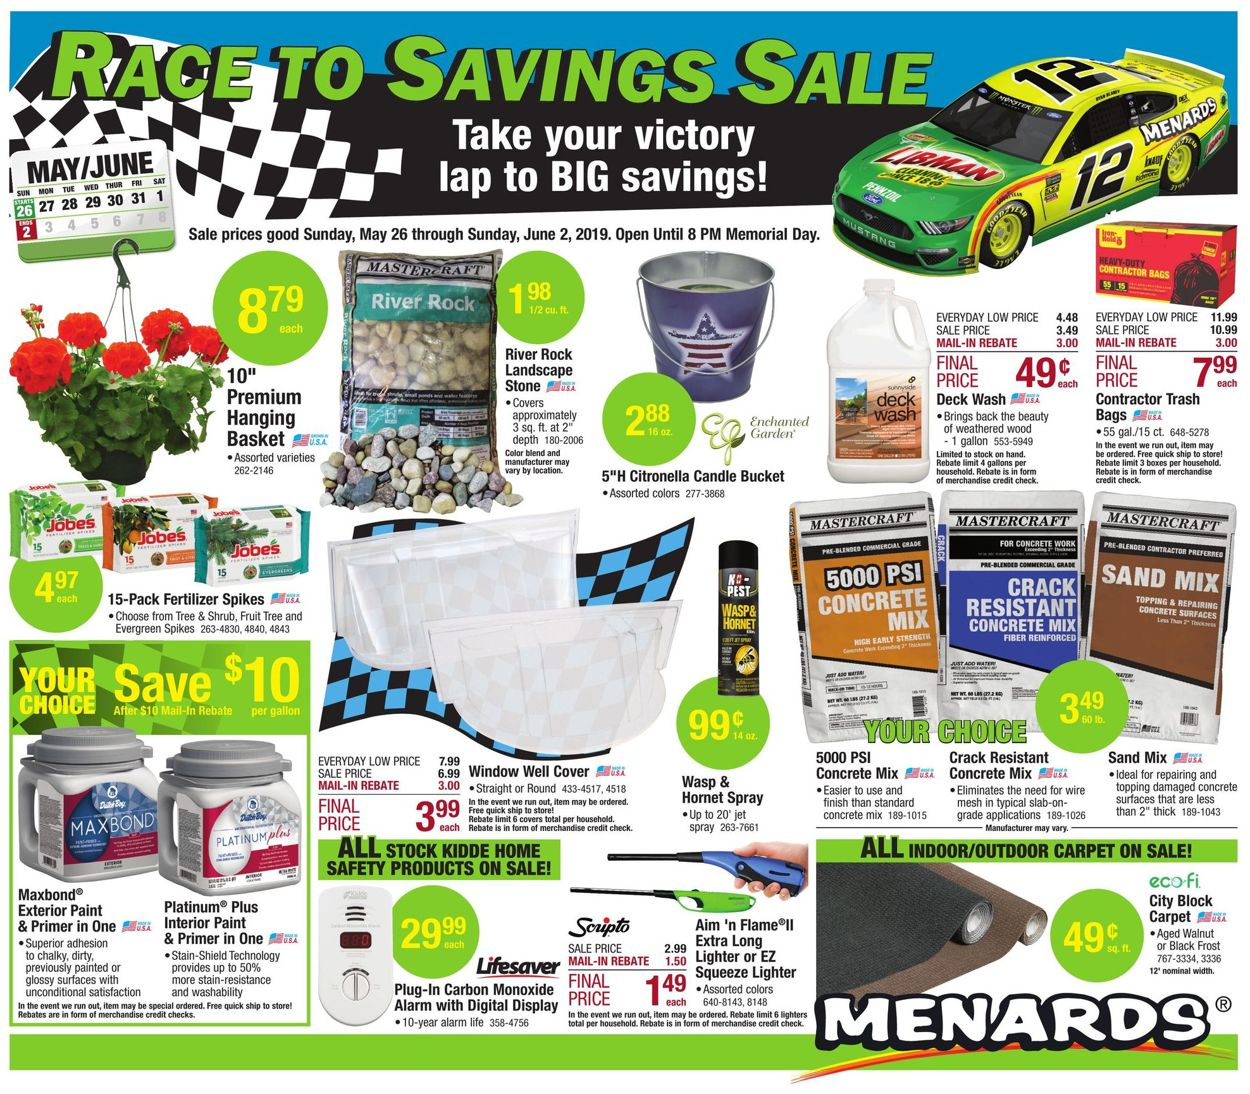 Menards Current weekly ad 05/26 - 06/02/2019 [3] - frequent